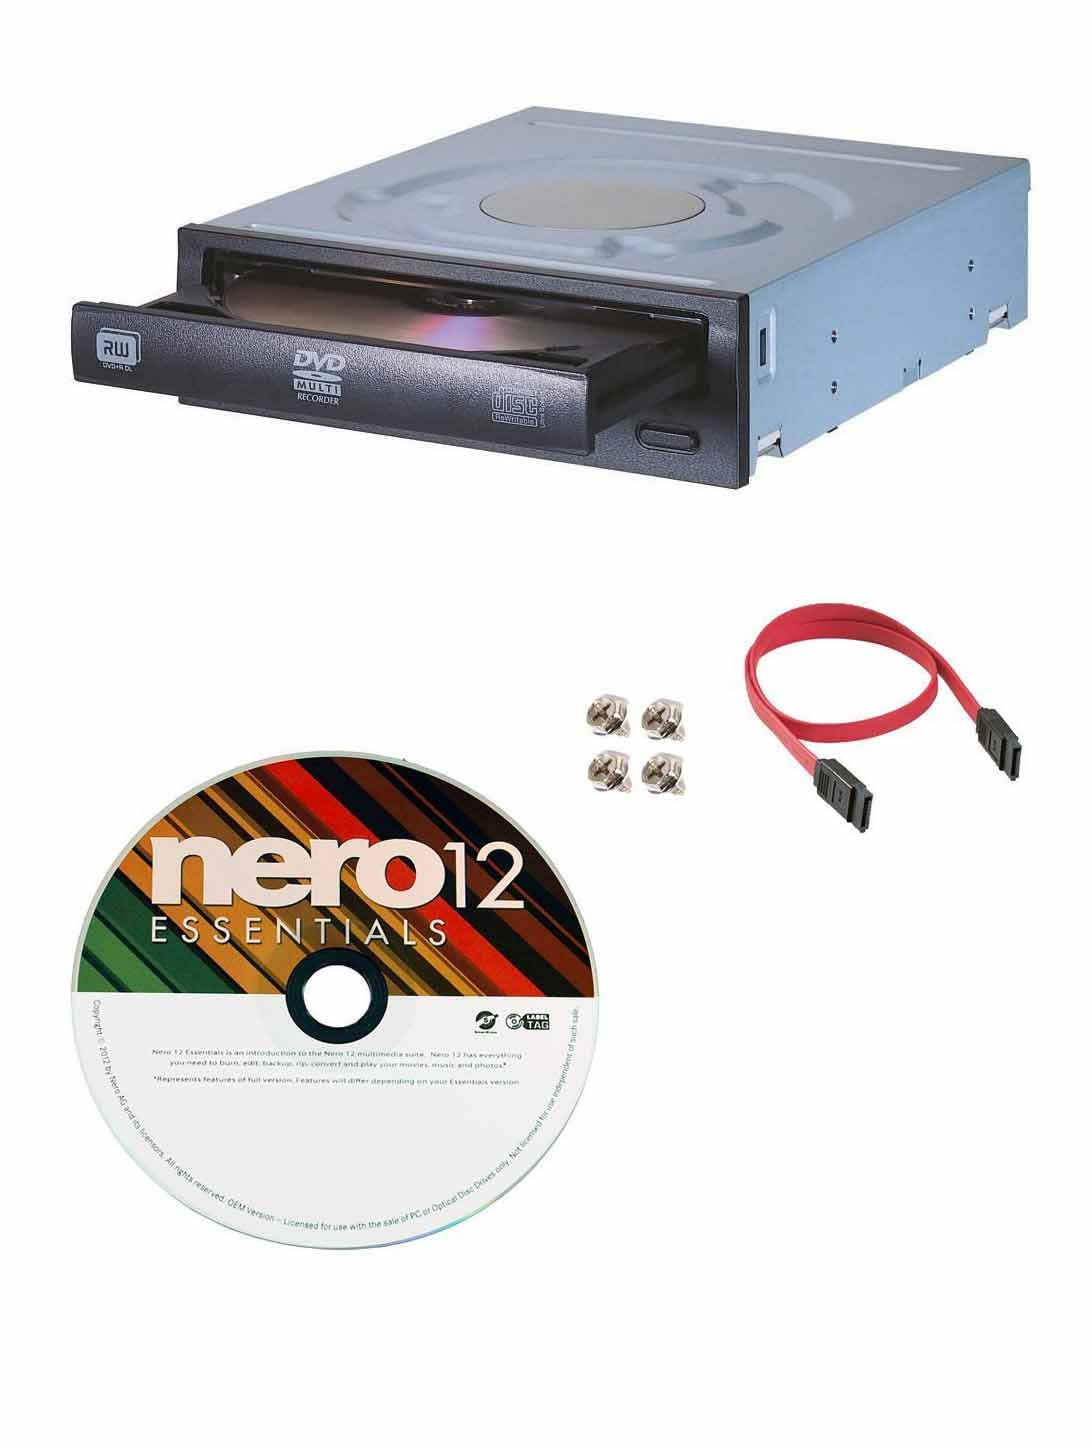 Lite-On 24x iHAS124 Internal DVD Writer Bundle with Nero Burning Software and Cable Accessories (SATA Optical Drive)